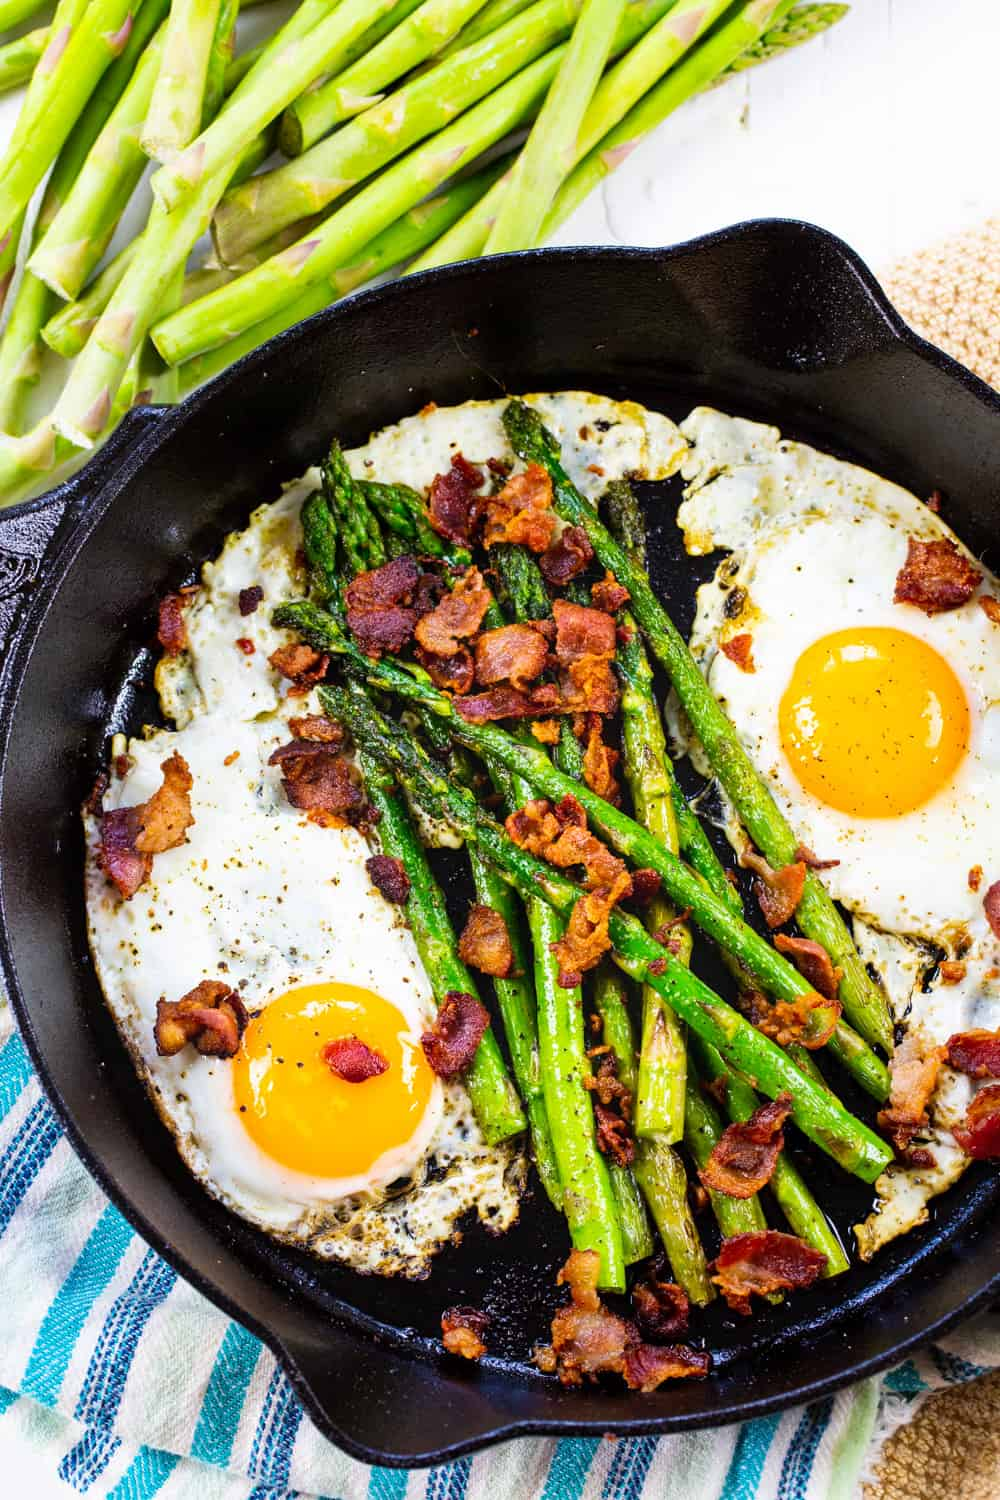 Two fried eggs, asparagus spears, and crumbled bacon in a cast iron pan.